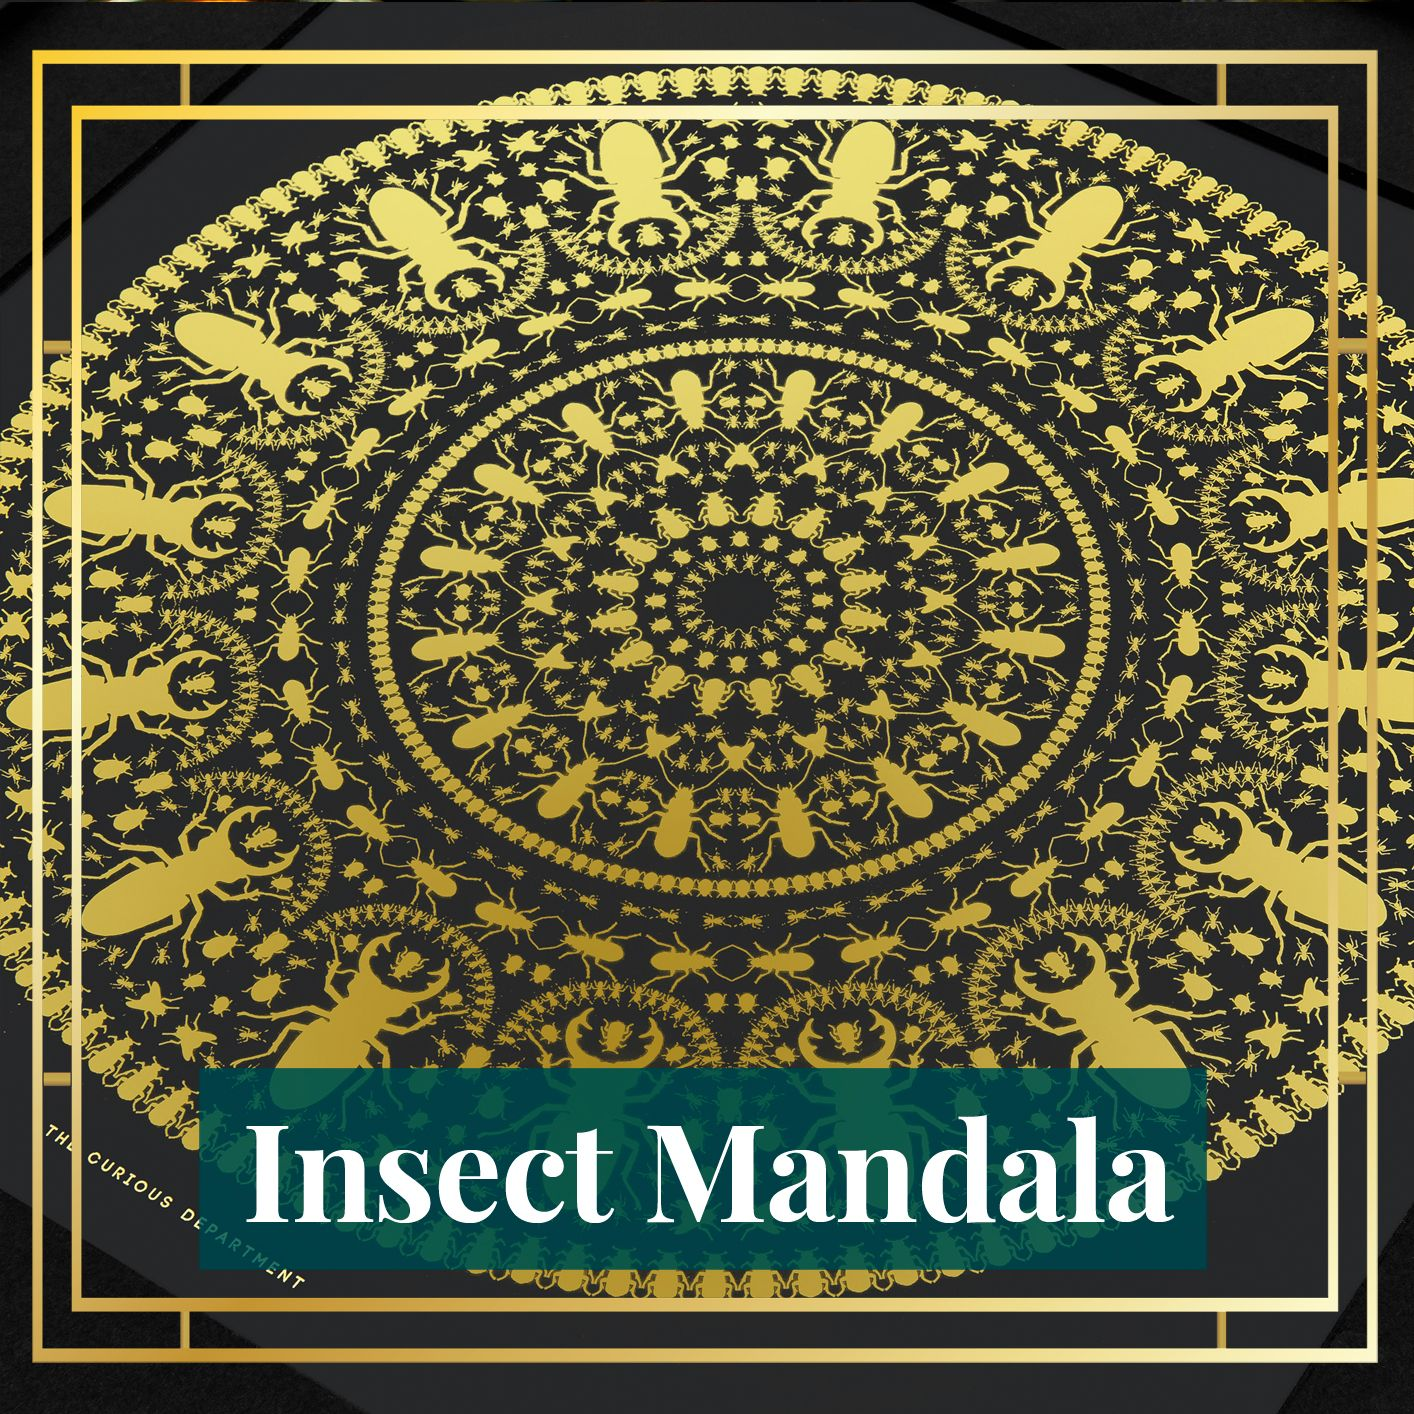 Our signature design, the Insect Mandala design can be found on our limited edition gold foil prints, gold cork coasters, faux suede cushions and our Fine Bone China range.